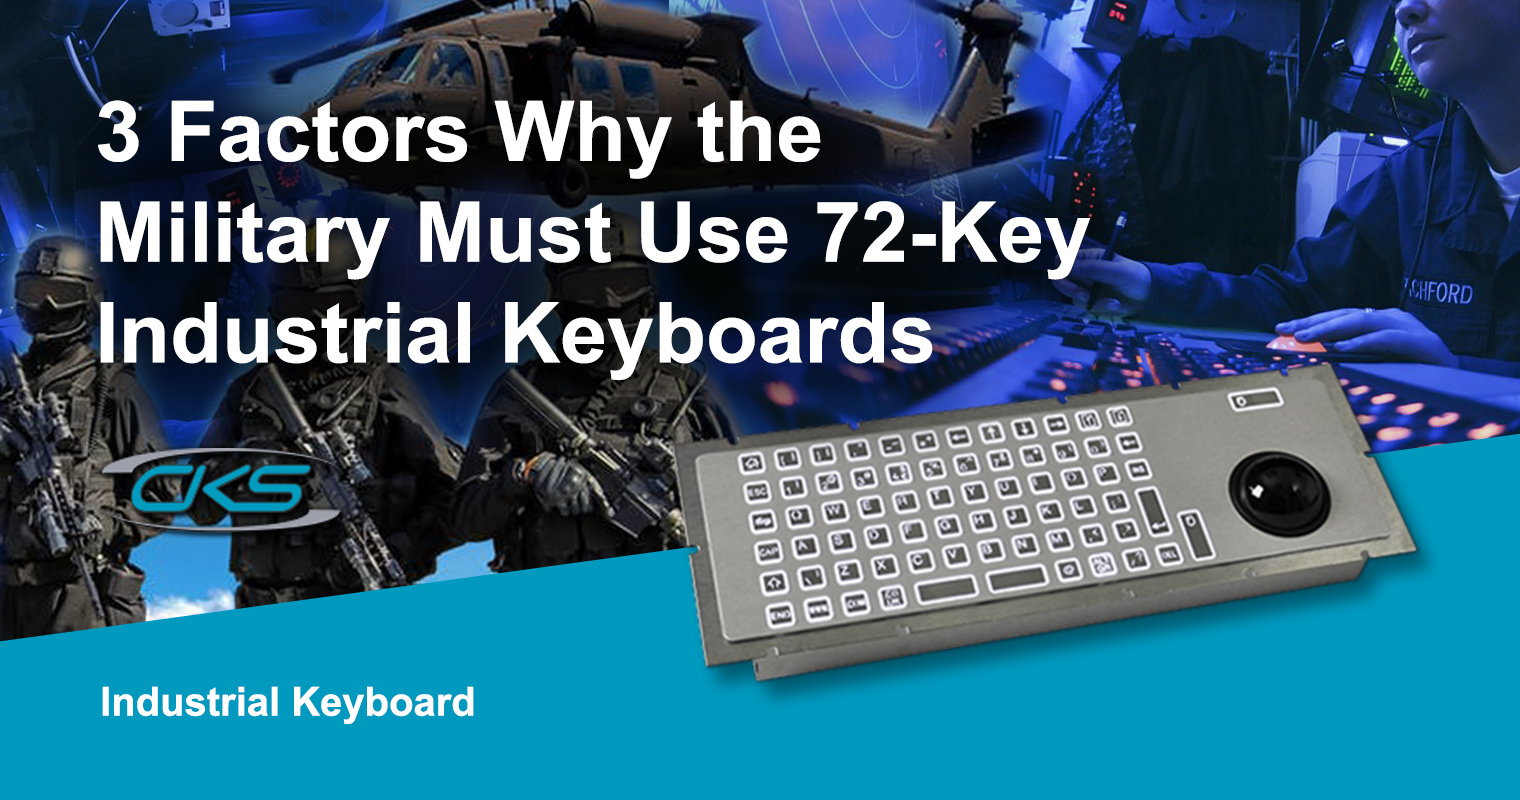 Key Features of the 72-key Industrial Keyboard for Military Use